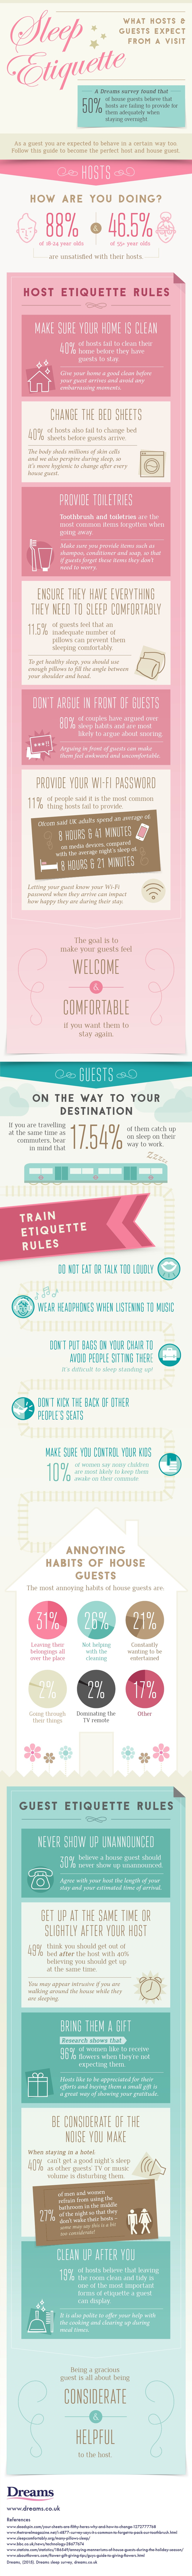 Sleep Etiquette We All Need To Agree On, an infographic from The Sleep Matters Club.